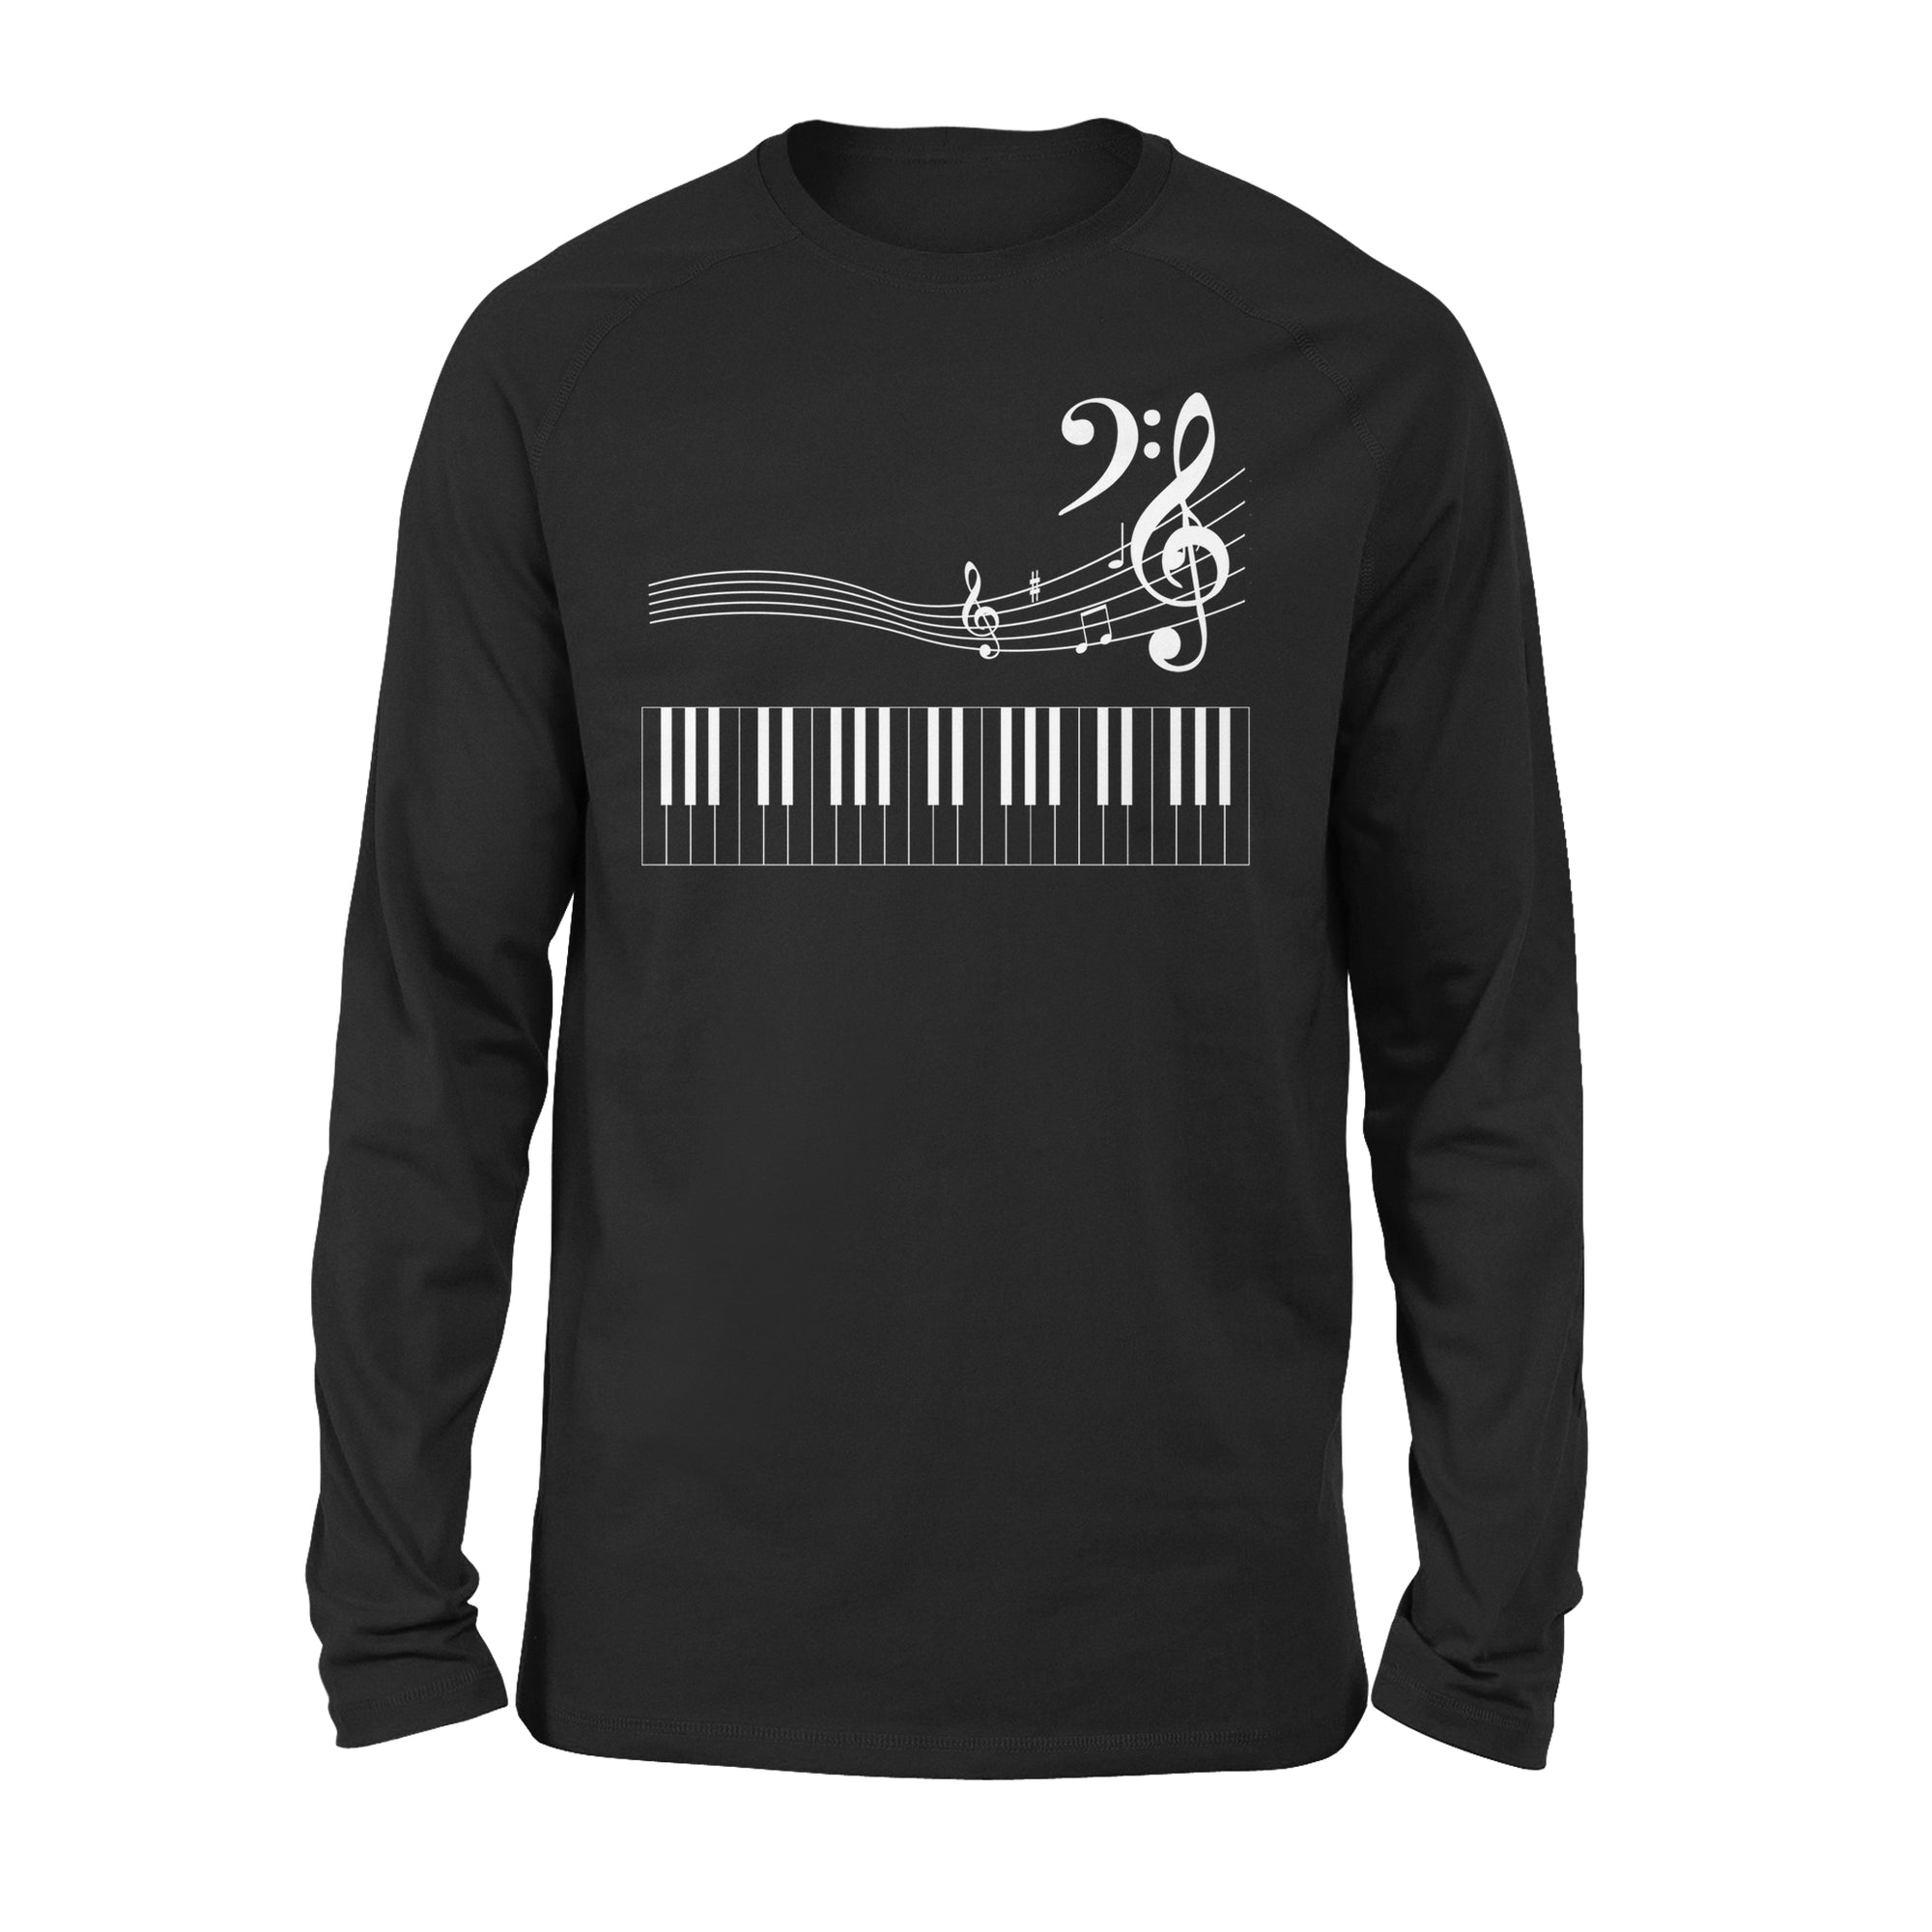 VIRA Premium Long Sleeve for awesome teachers